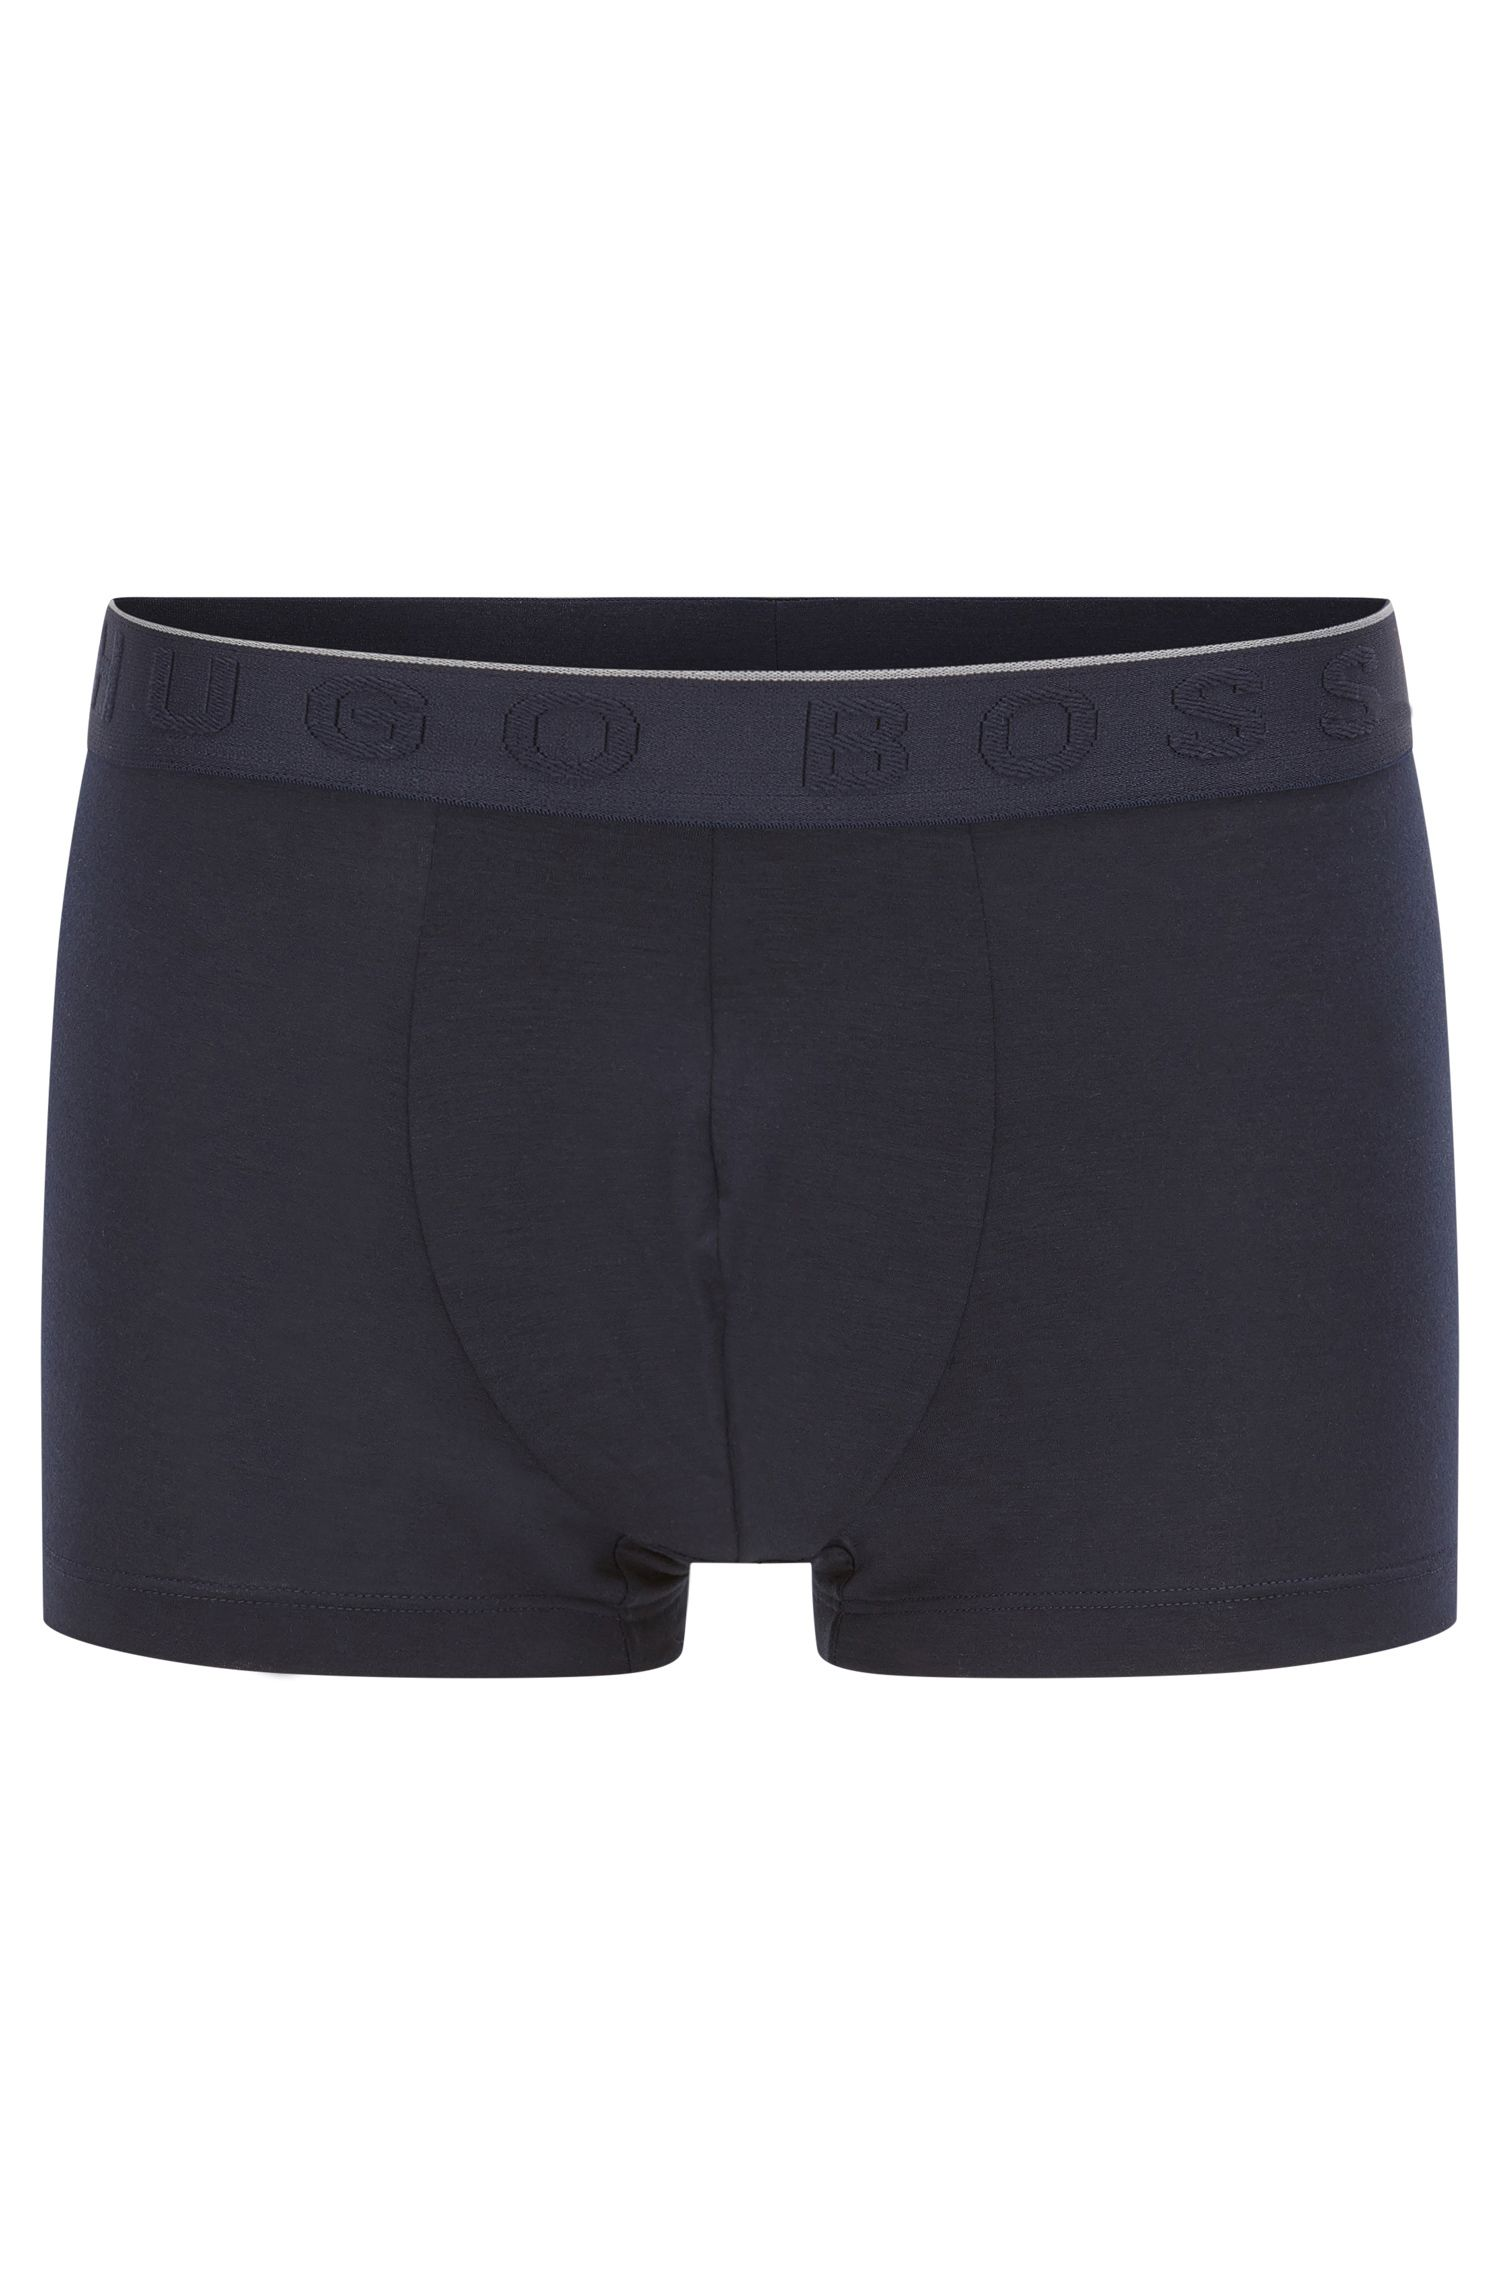 Travel Line boxer shorts in stretch modal blend with lyocell: 'Trunk Seacell', Dark Blue